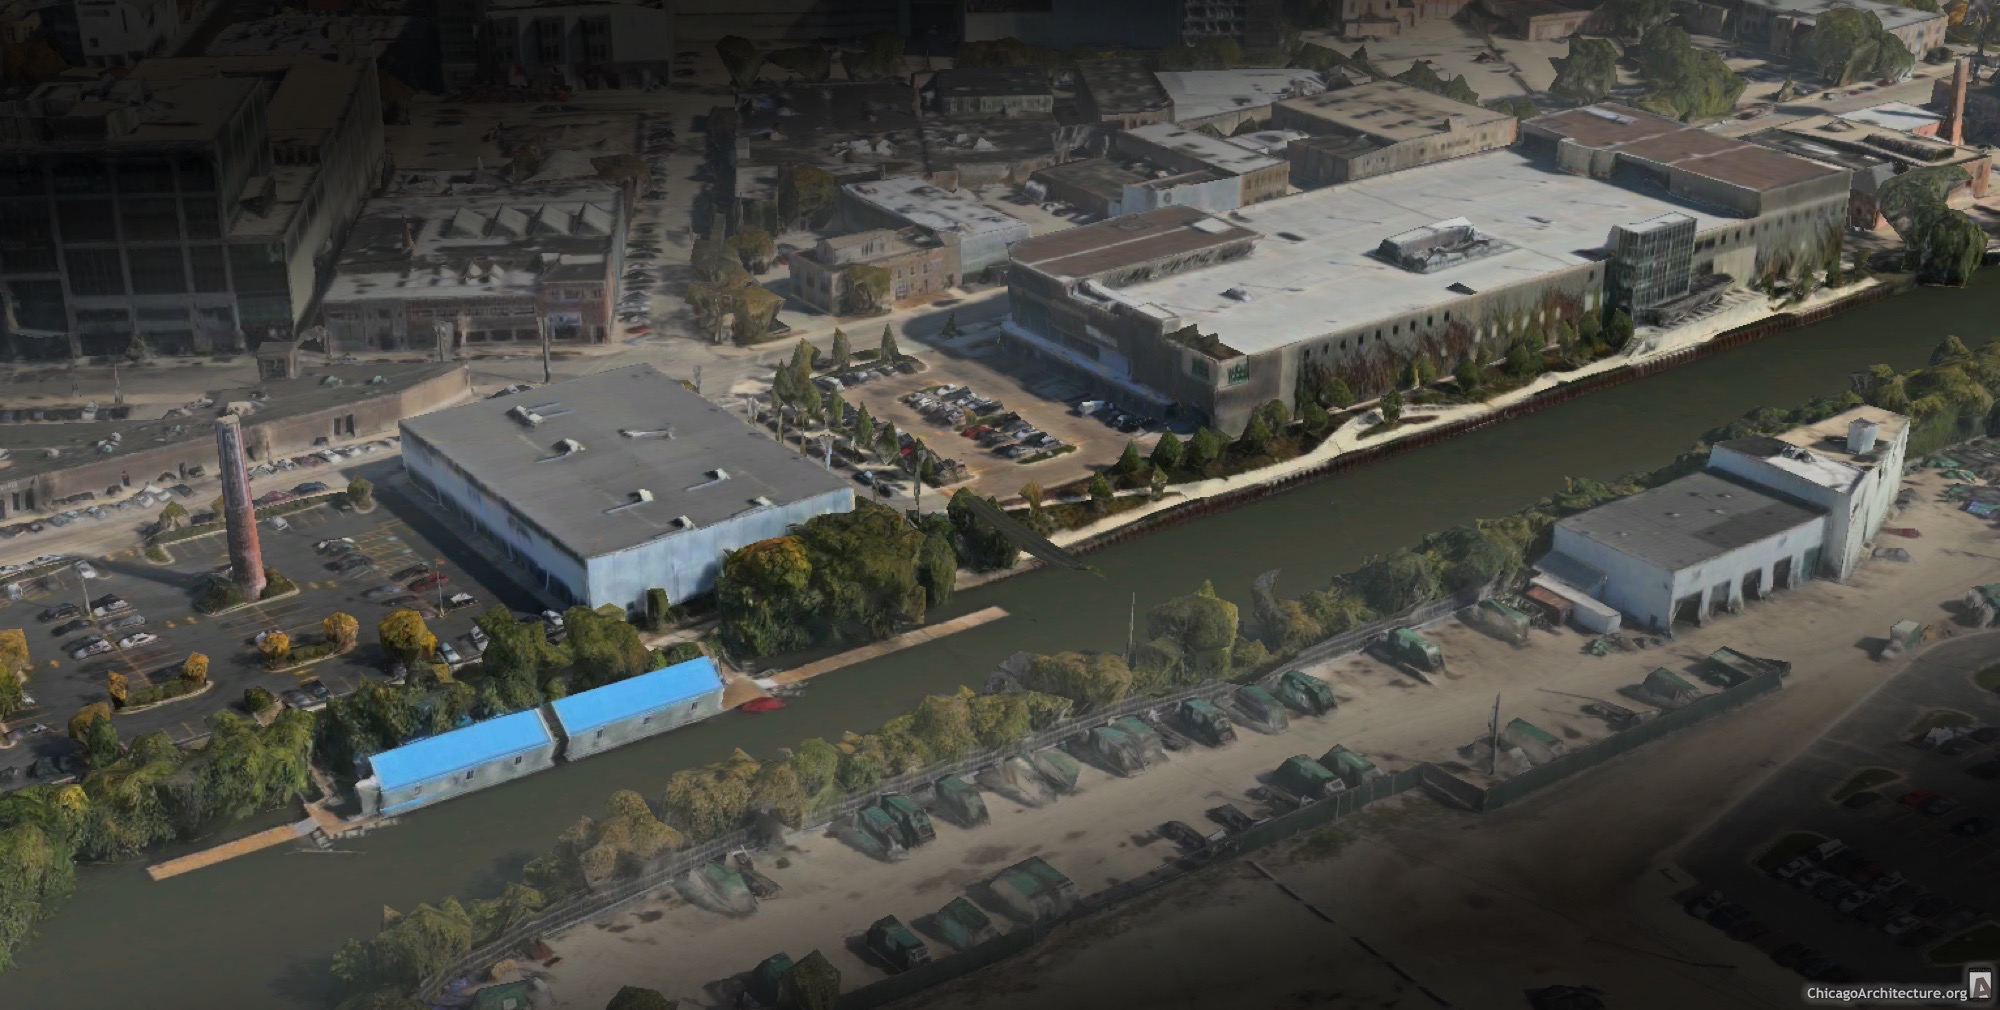 A view of the current secluded riverwalk off Kingsbury Street. (via Apple Maps)